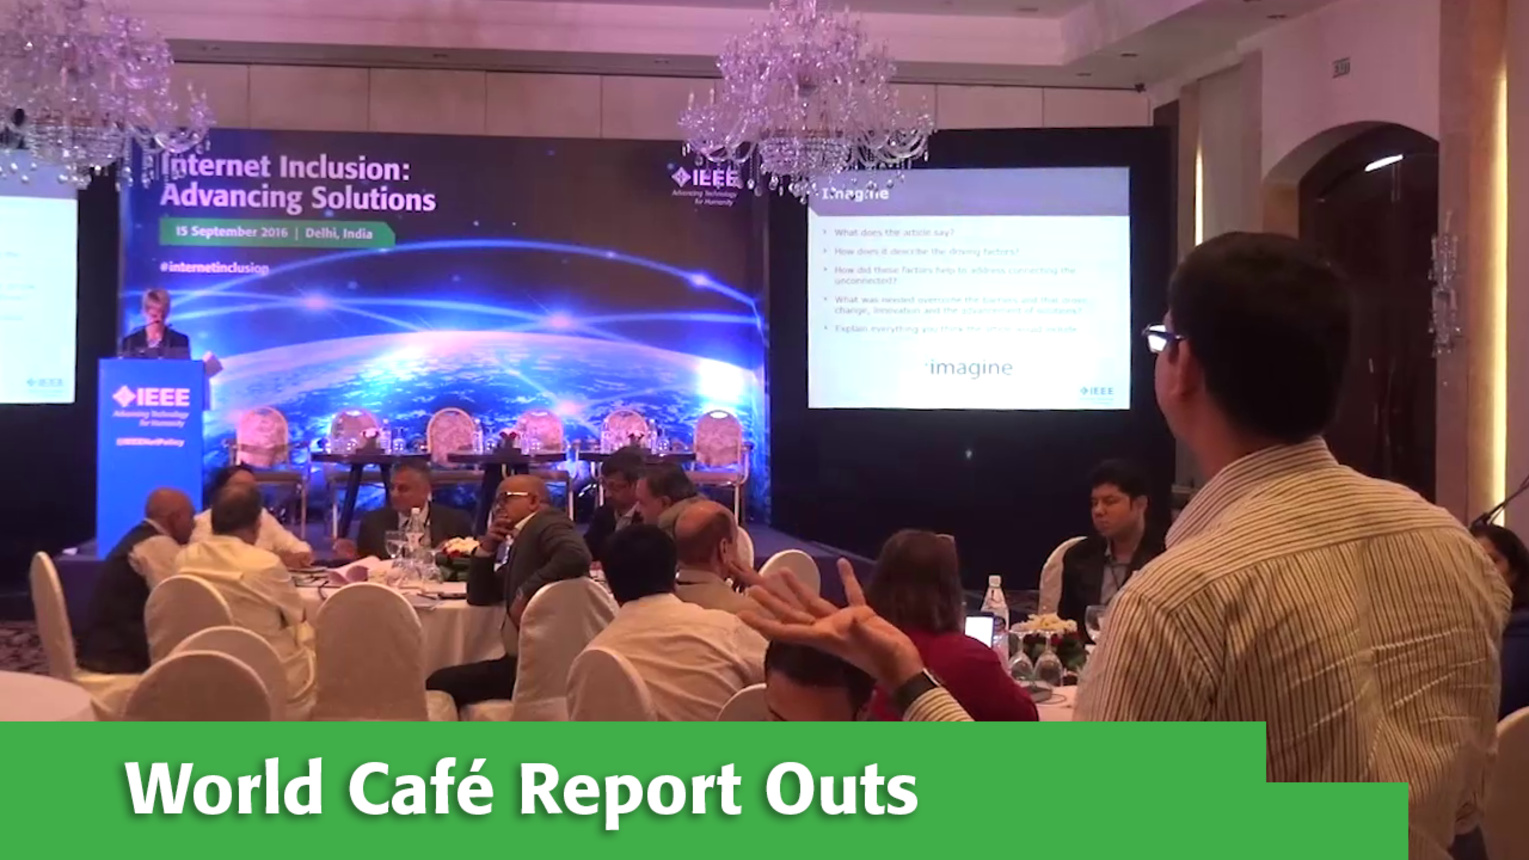 World Cafe Report Outs at Internet Inclusion: Advancing Solutions, Delhi, 2016